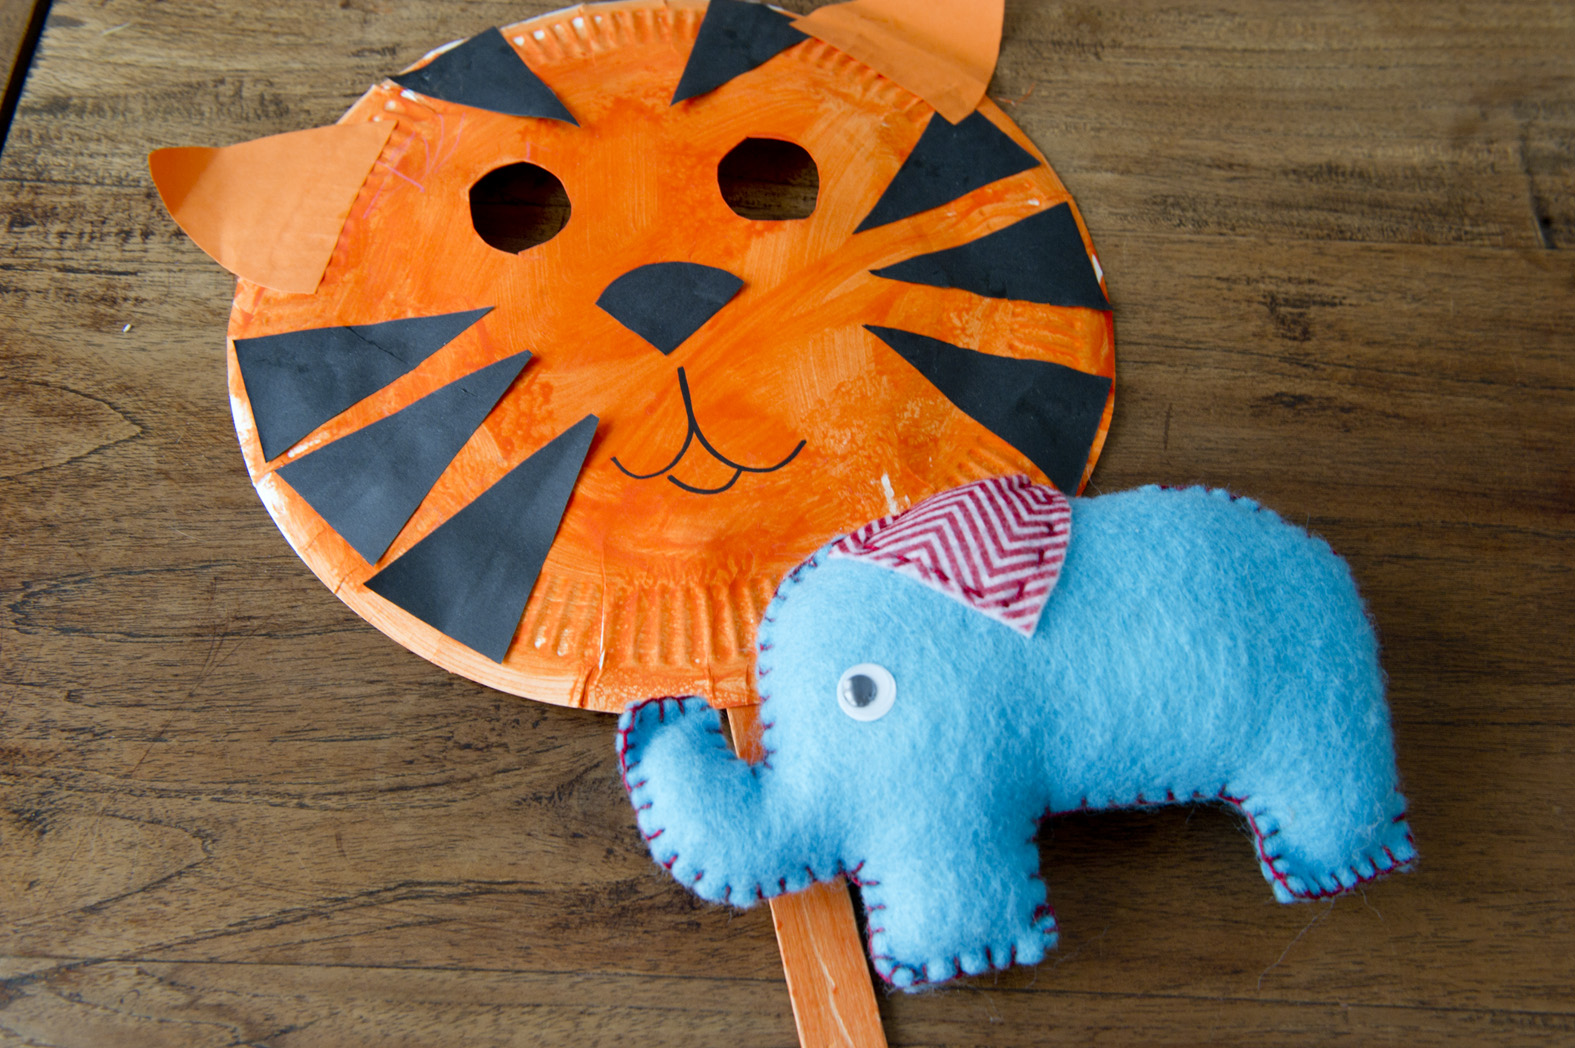 & Craft for Kids: Tiger Mask | The Little Singapore Book Companion